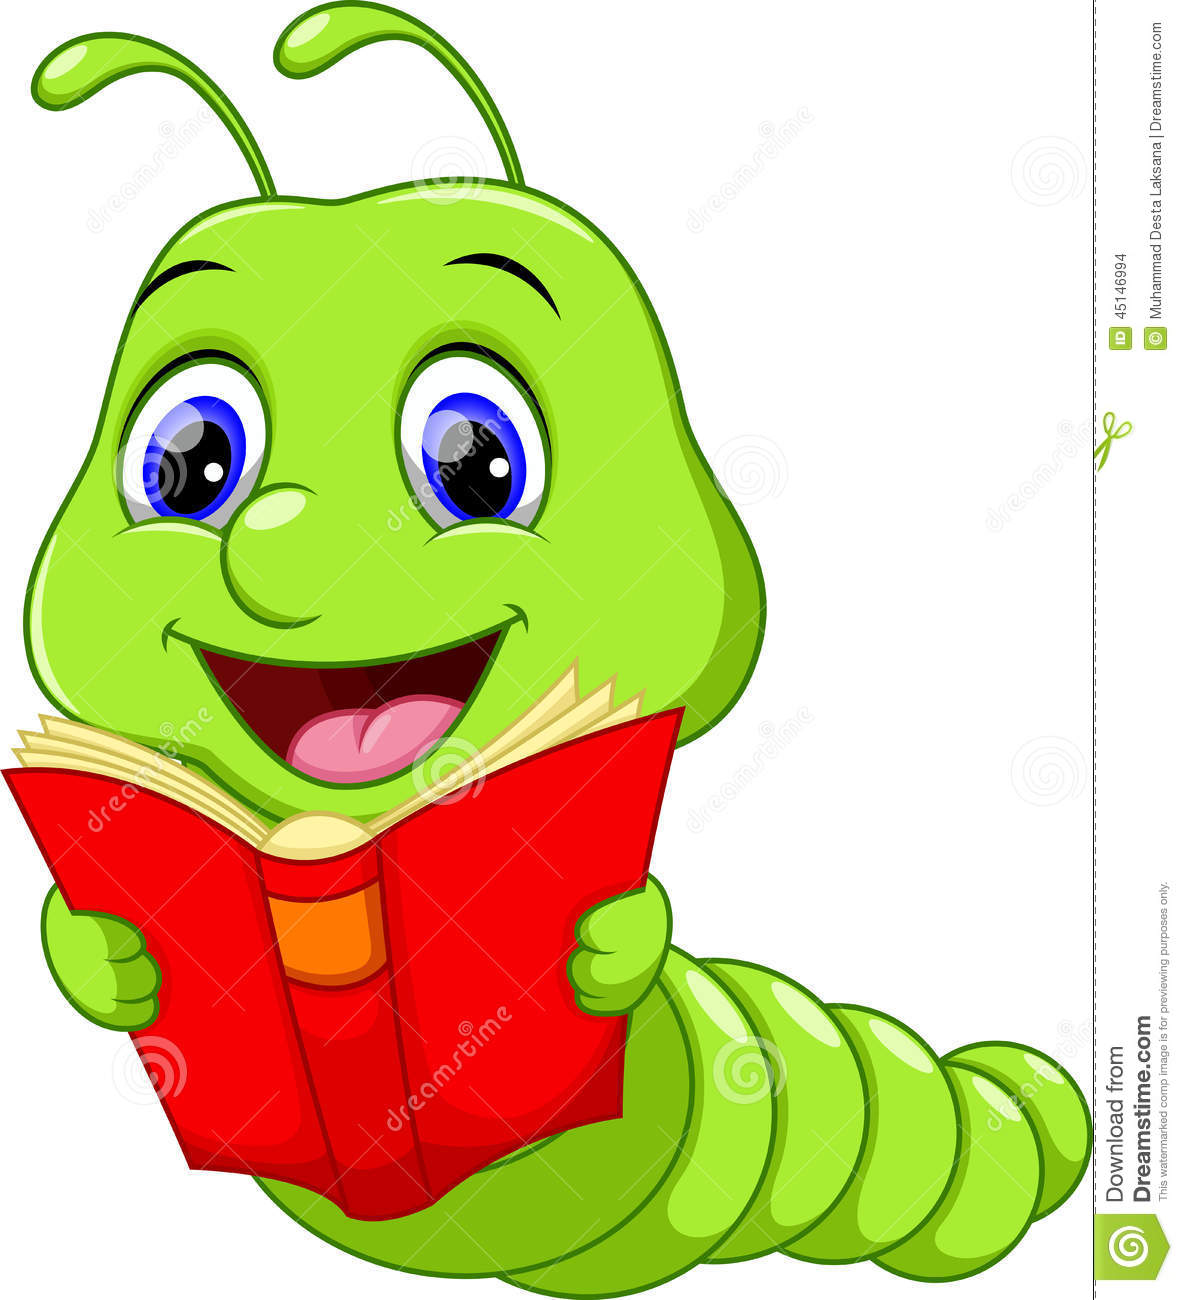 Cute Book Worm Clipart - Clipart Kid